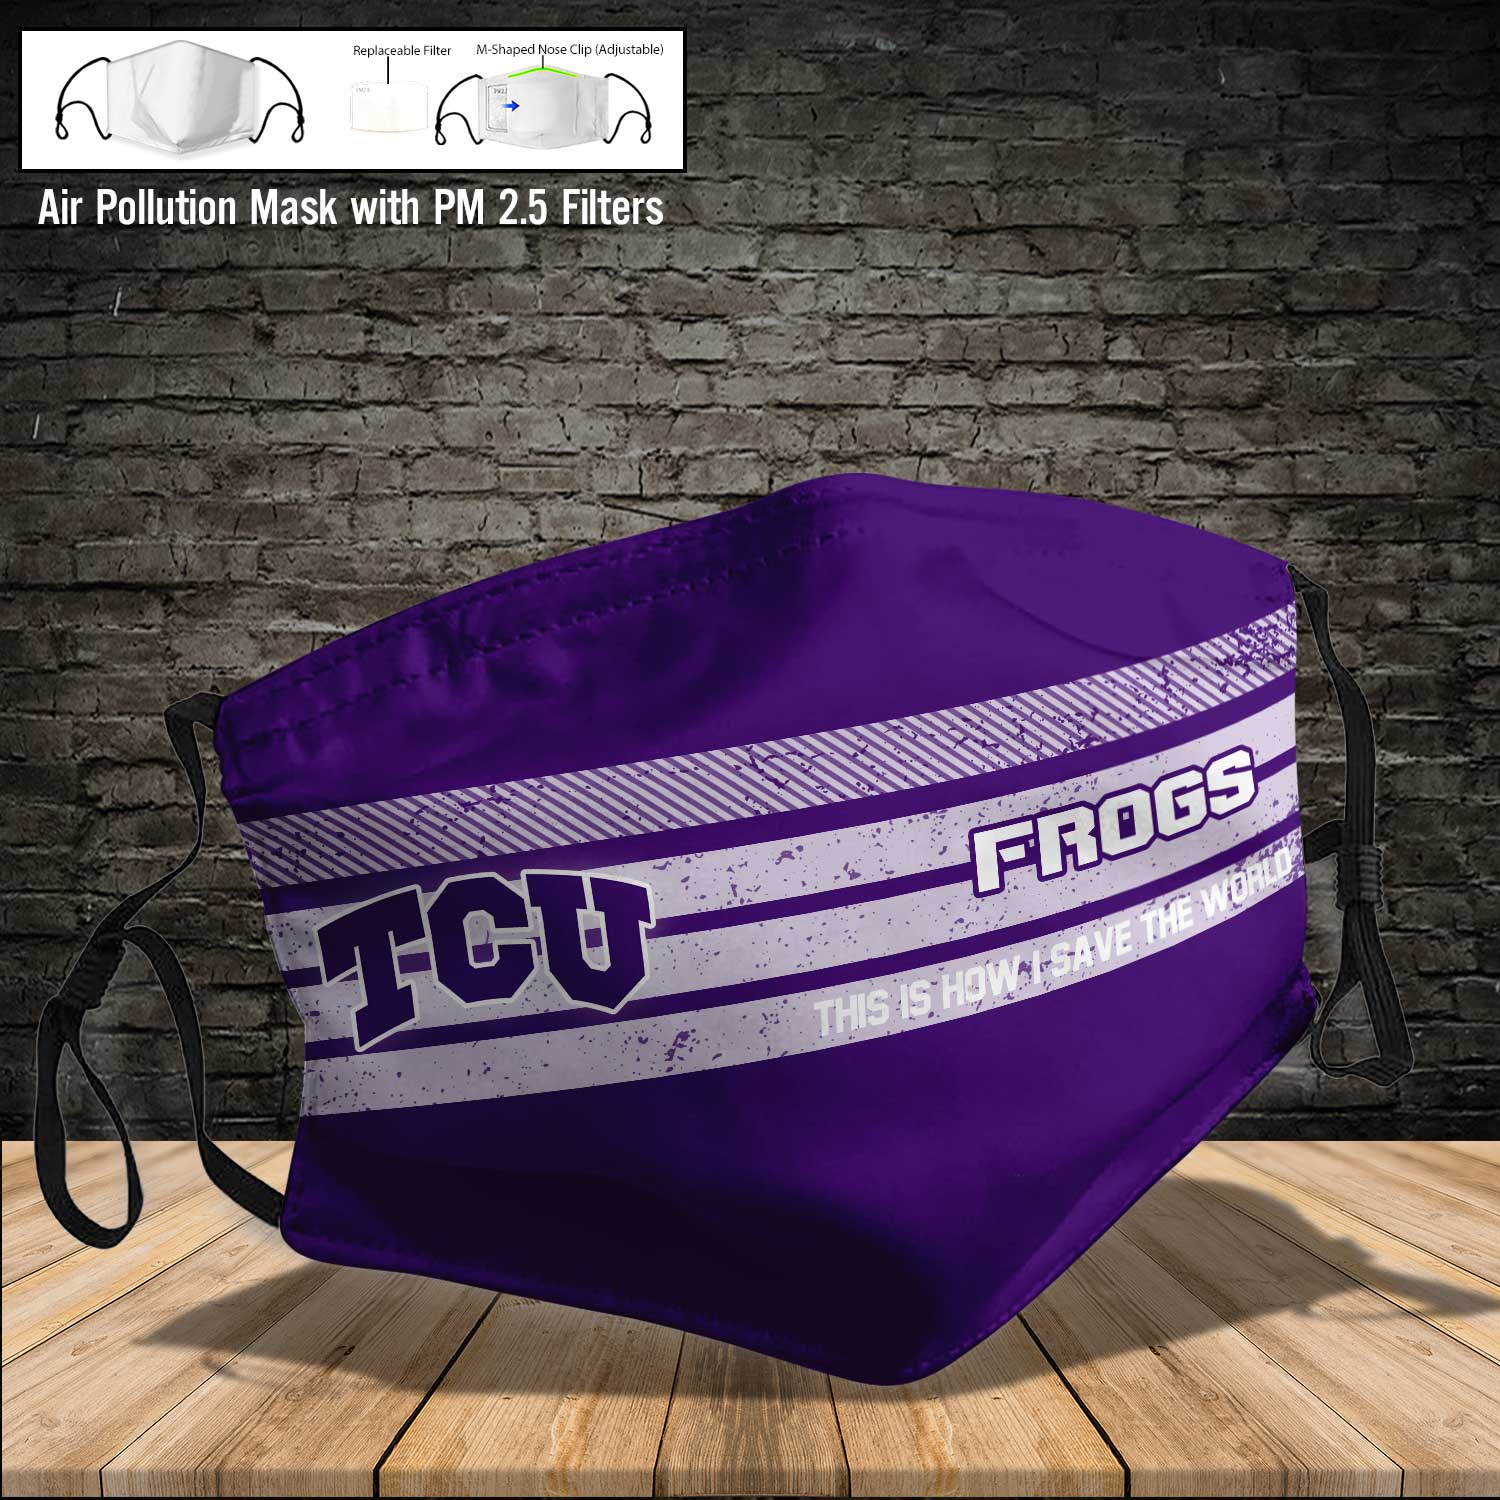 TCU horned frogs this is how i save the world face mask 3